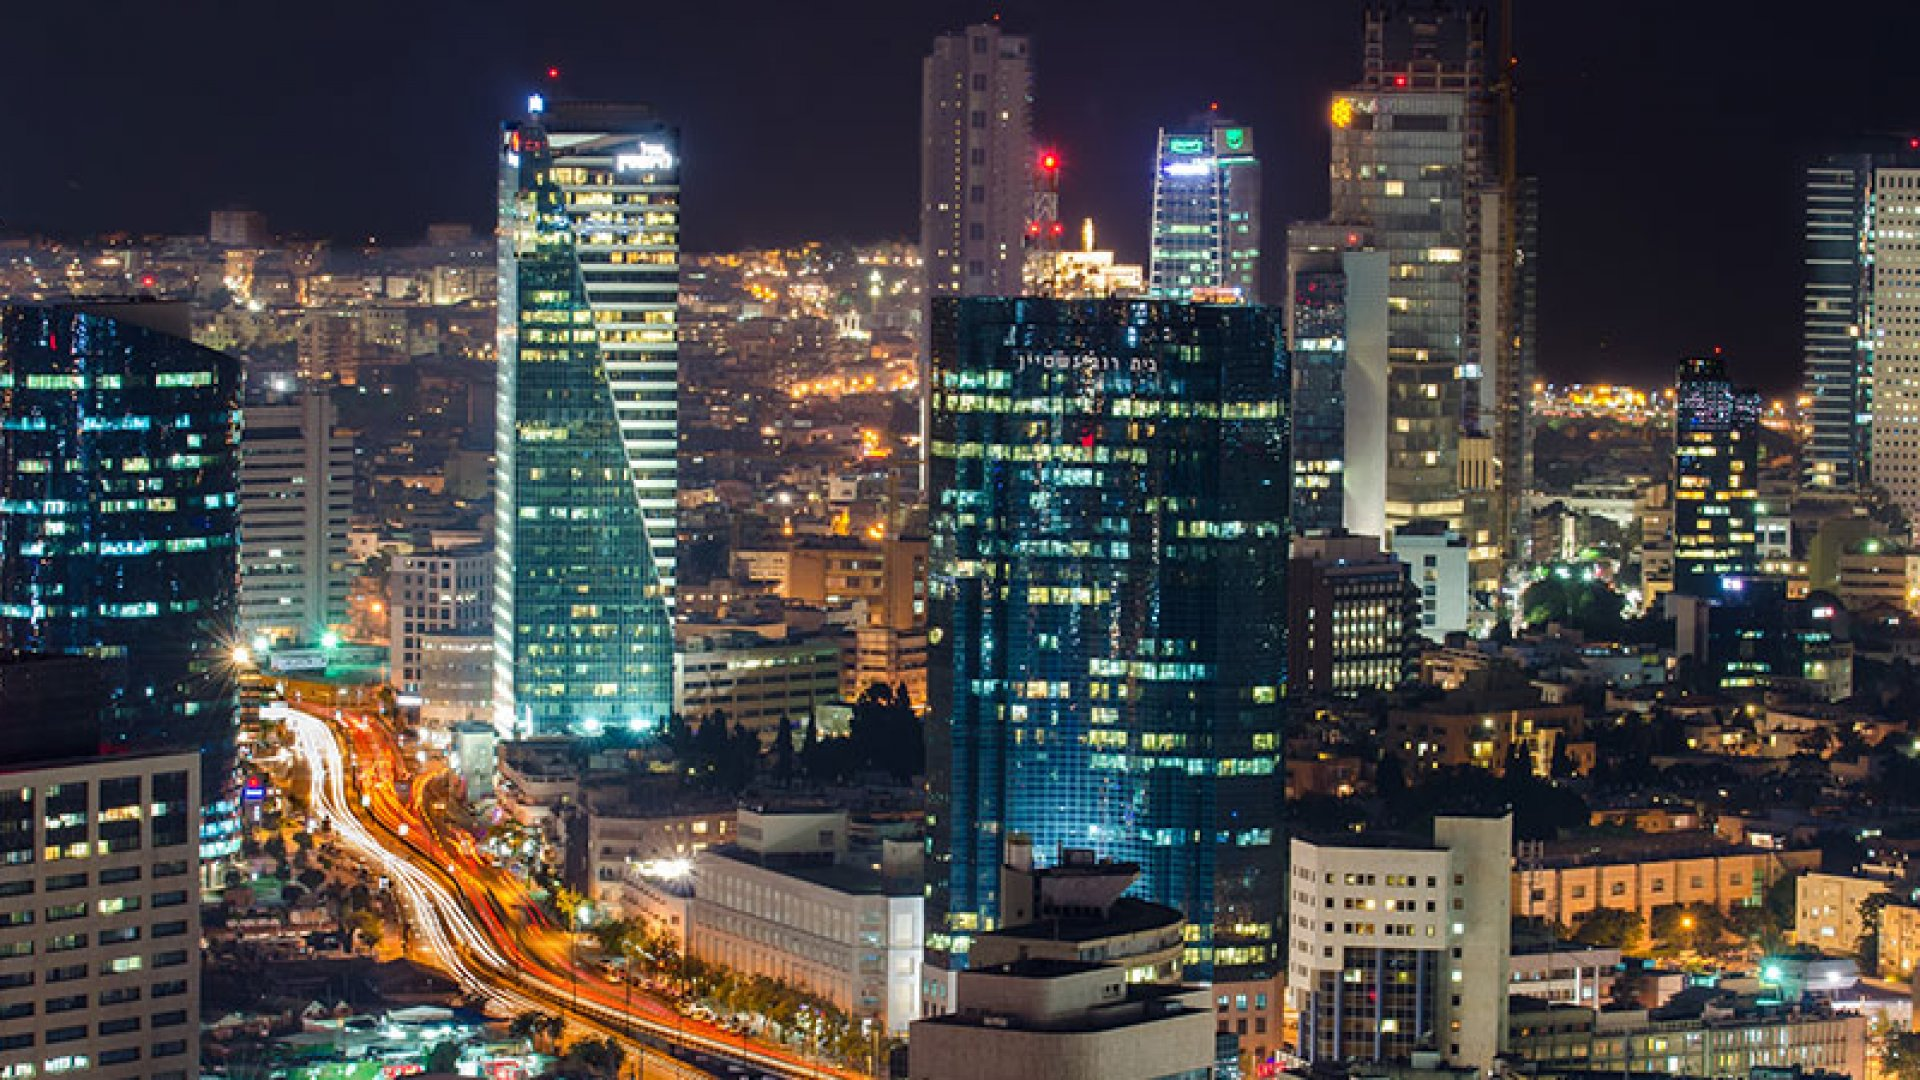 Tel Aviv: Hotbed of Startup Culture and Money